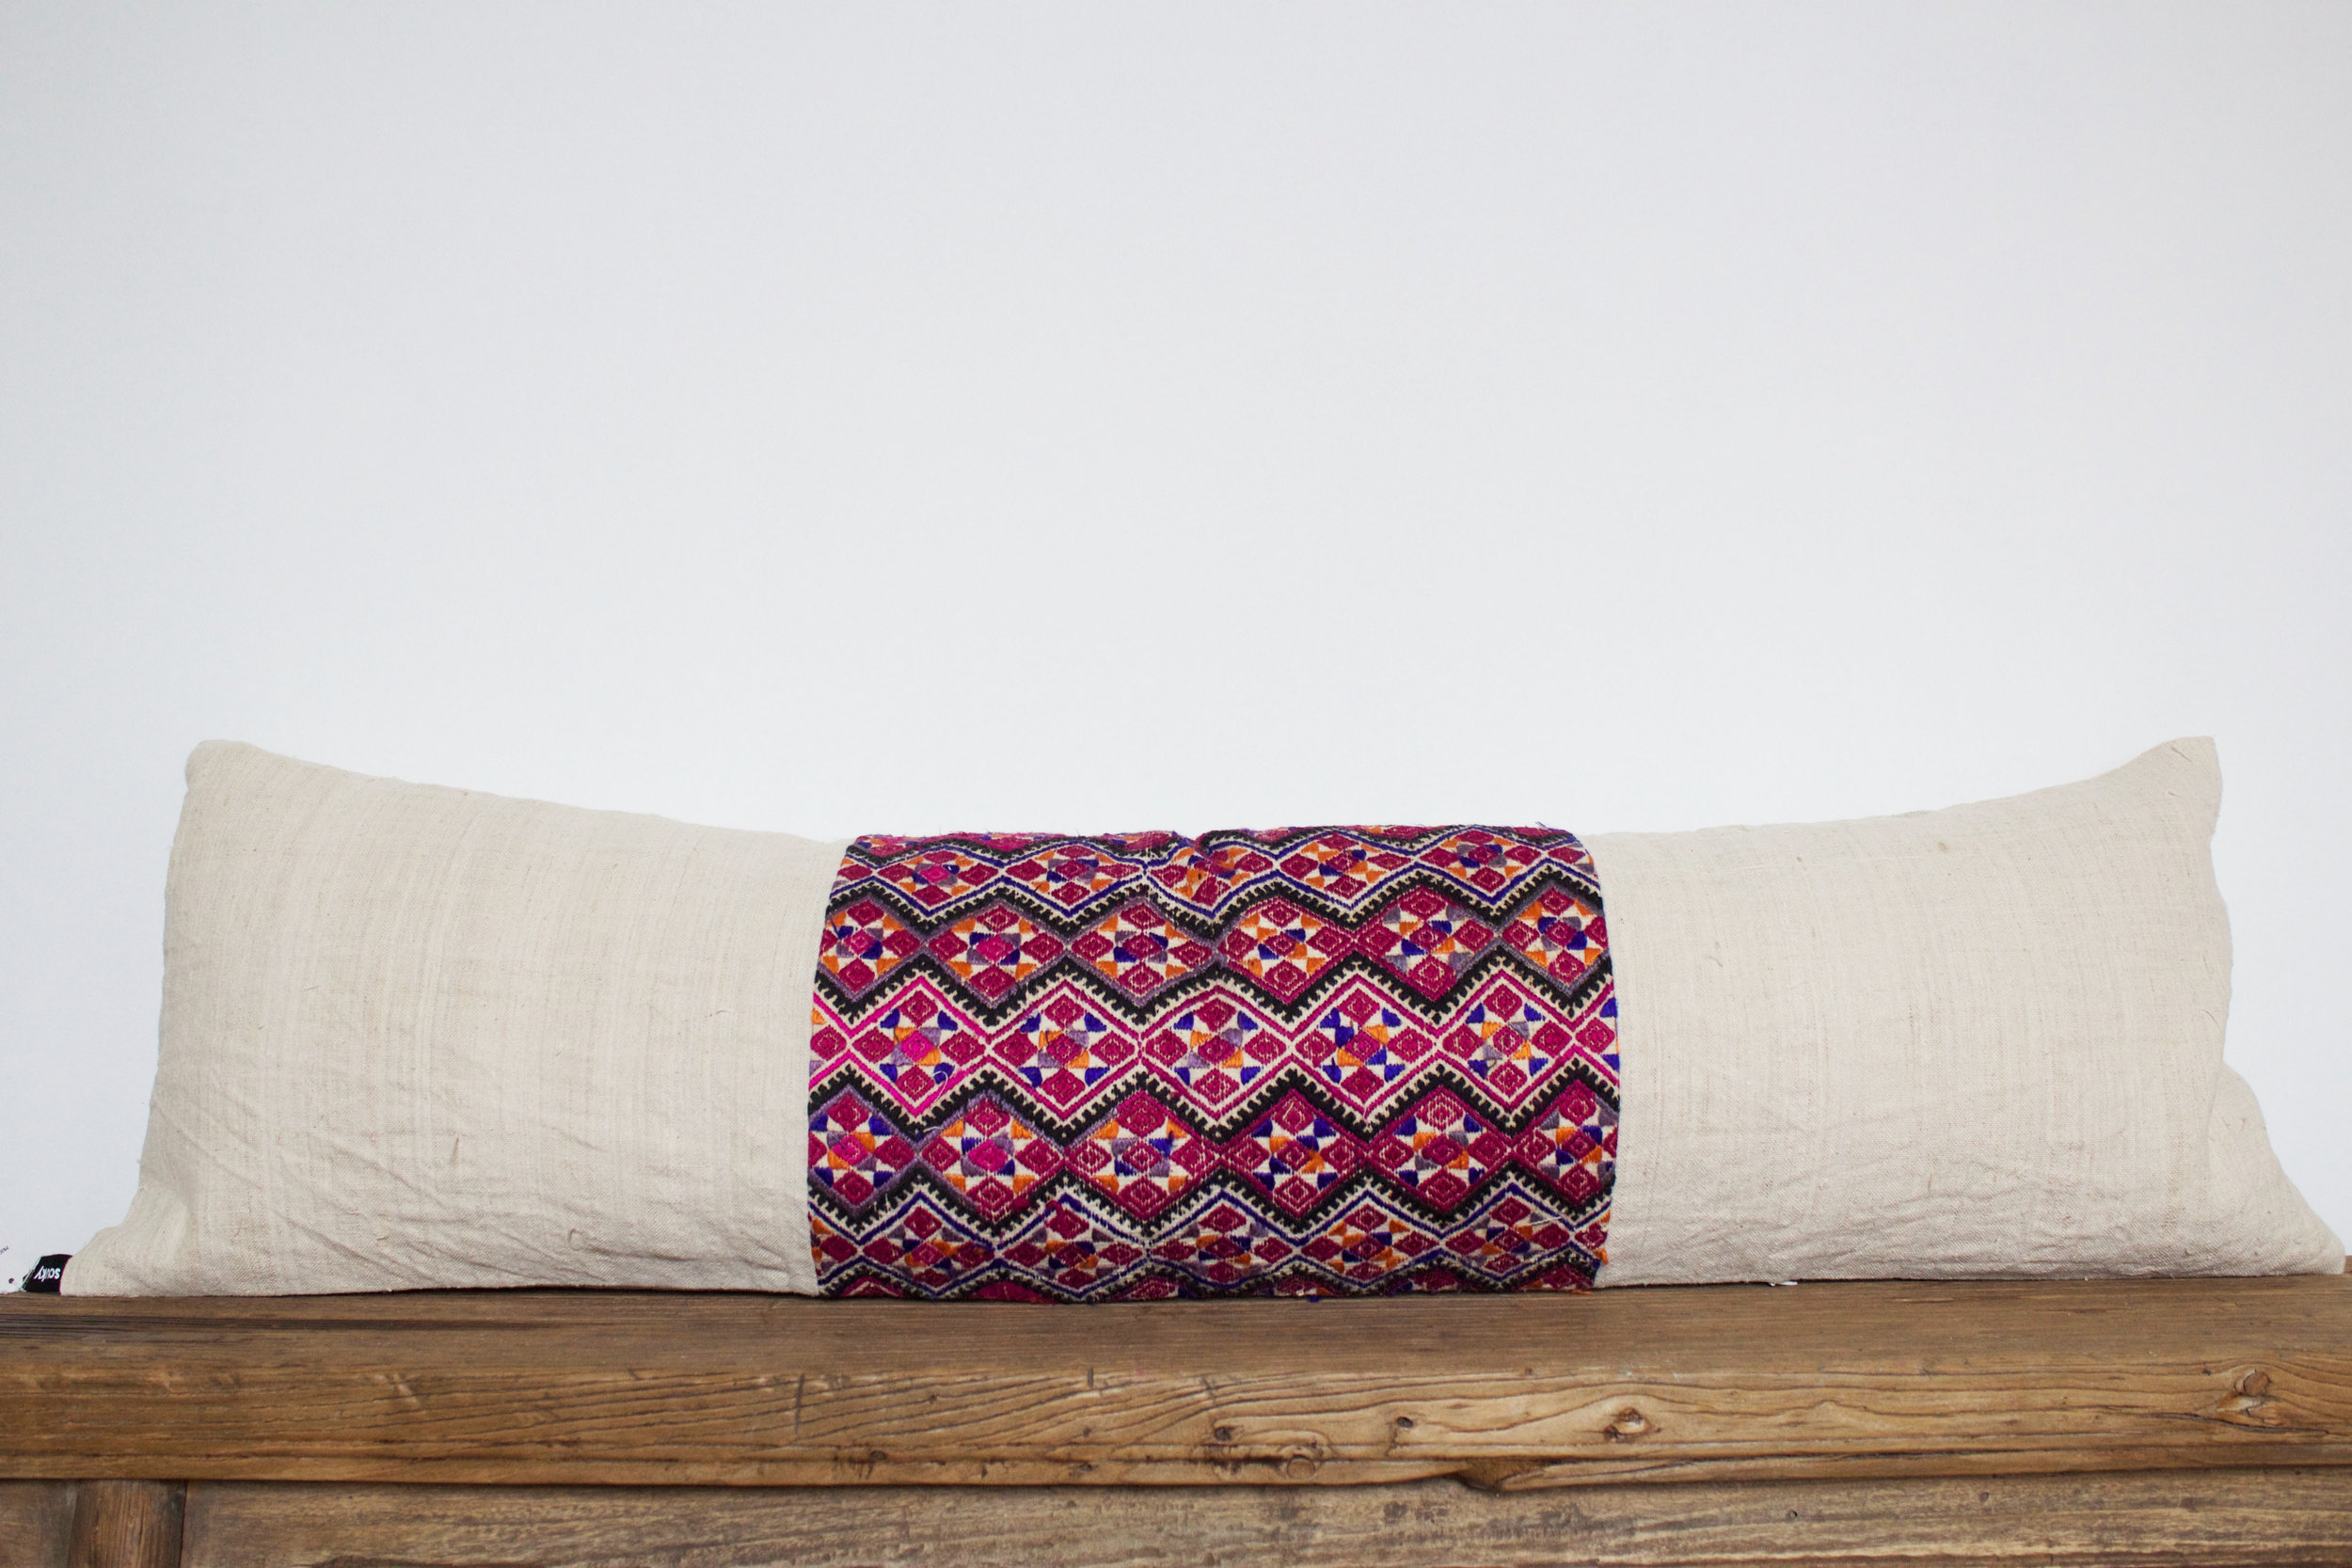 Eloise- No. 602   550 RMB  Pillow cover is made from hemp and vintage, embroidered fabric from in southern China  Size: Roughly 104x30 cm  Pillow back is made from a neutral cotton/linen blend  White zipper on bottom of pillow  Down insert included  Hand wash only